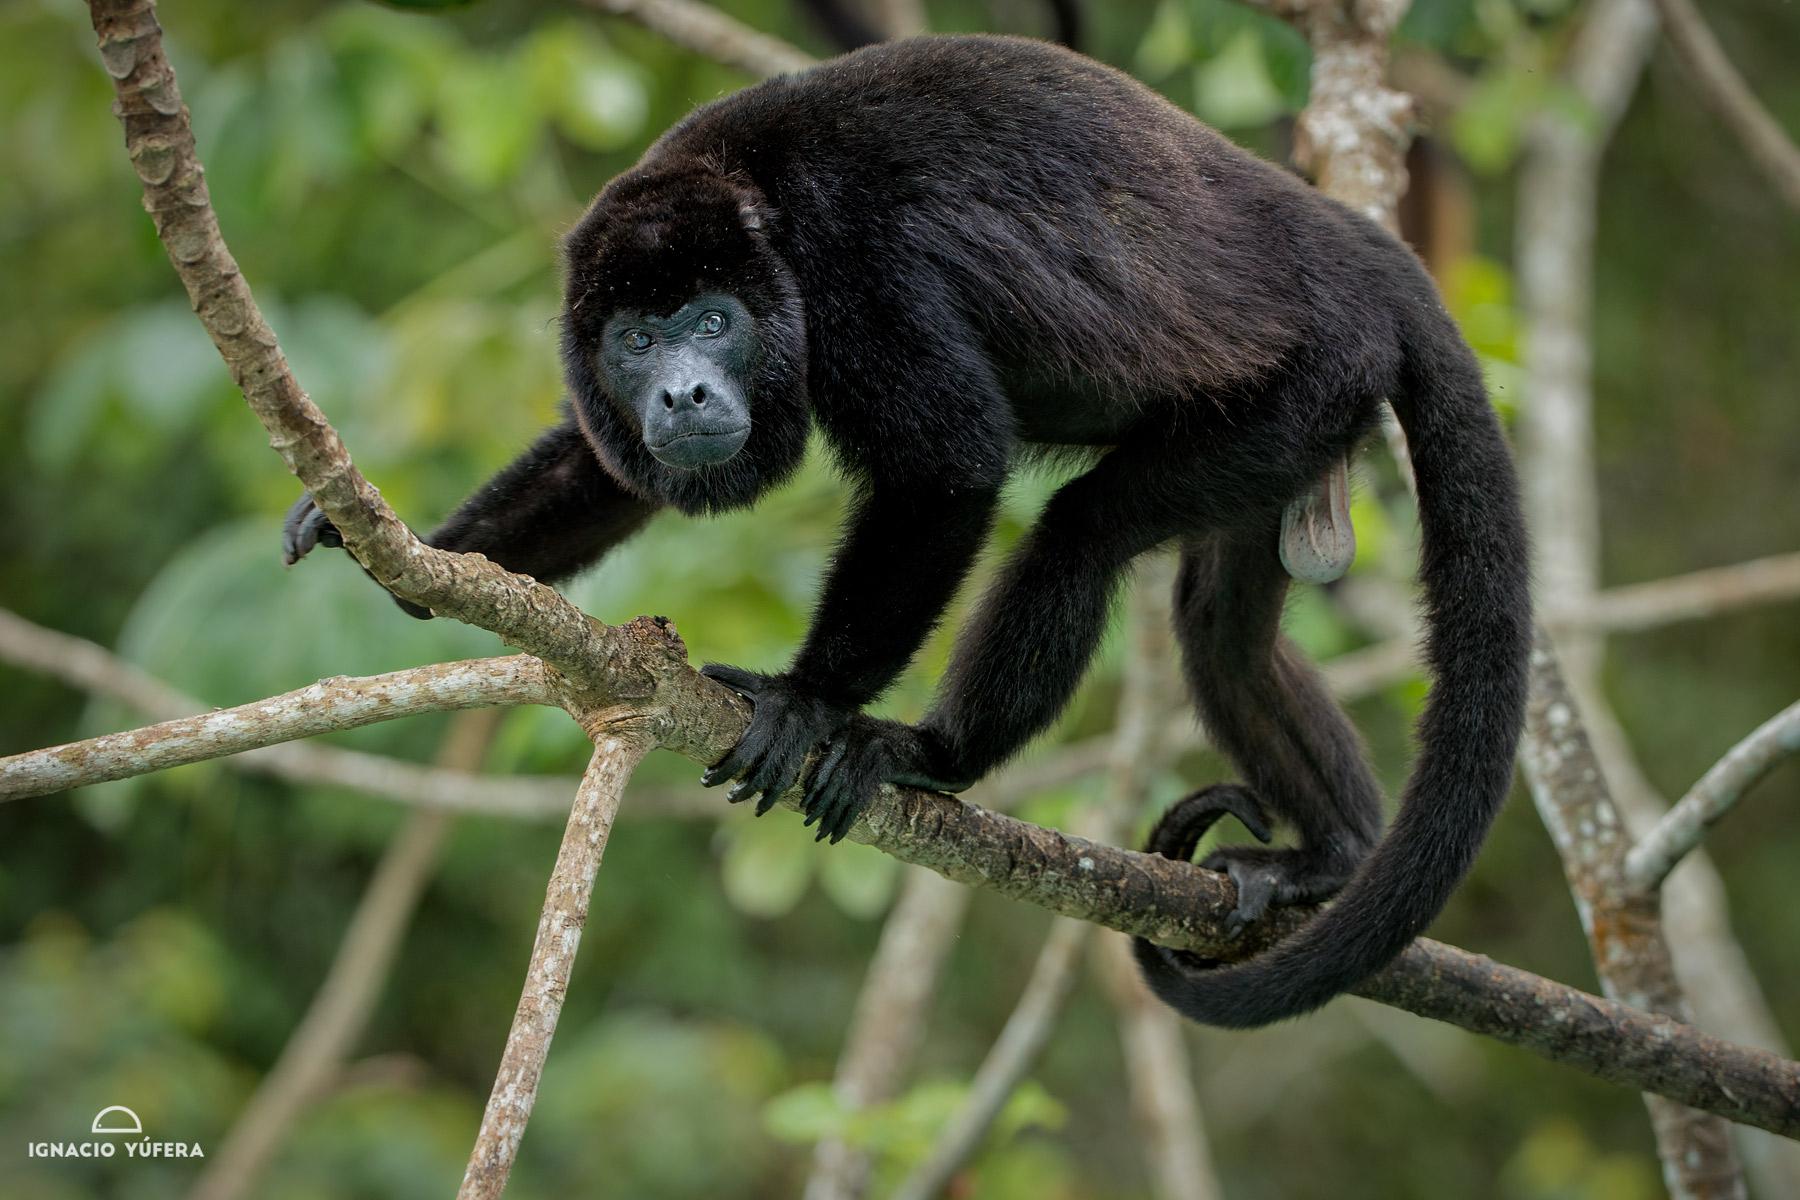 Mantled Howler Monkey (Alouatta palliata), adult male, Gamboa, Panama